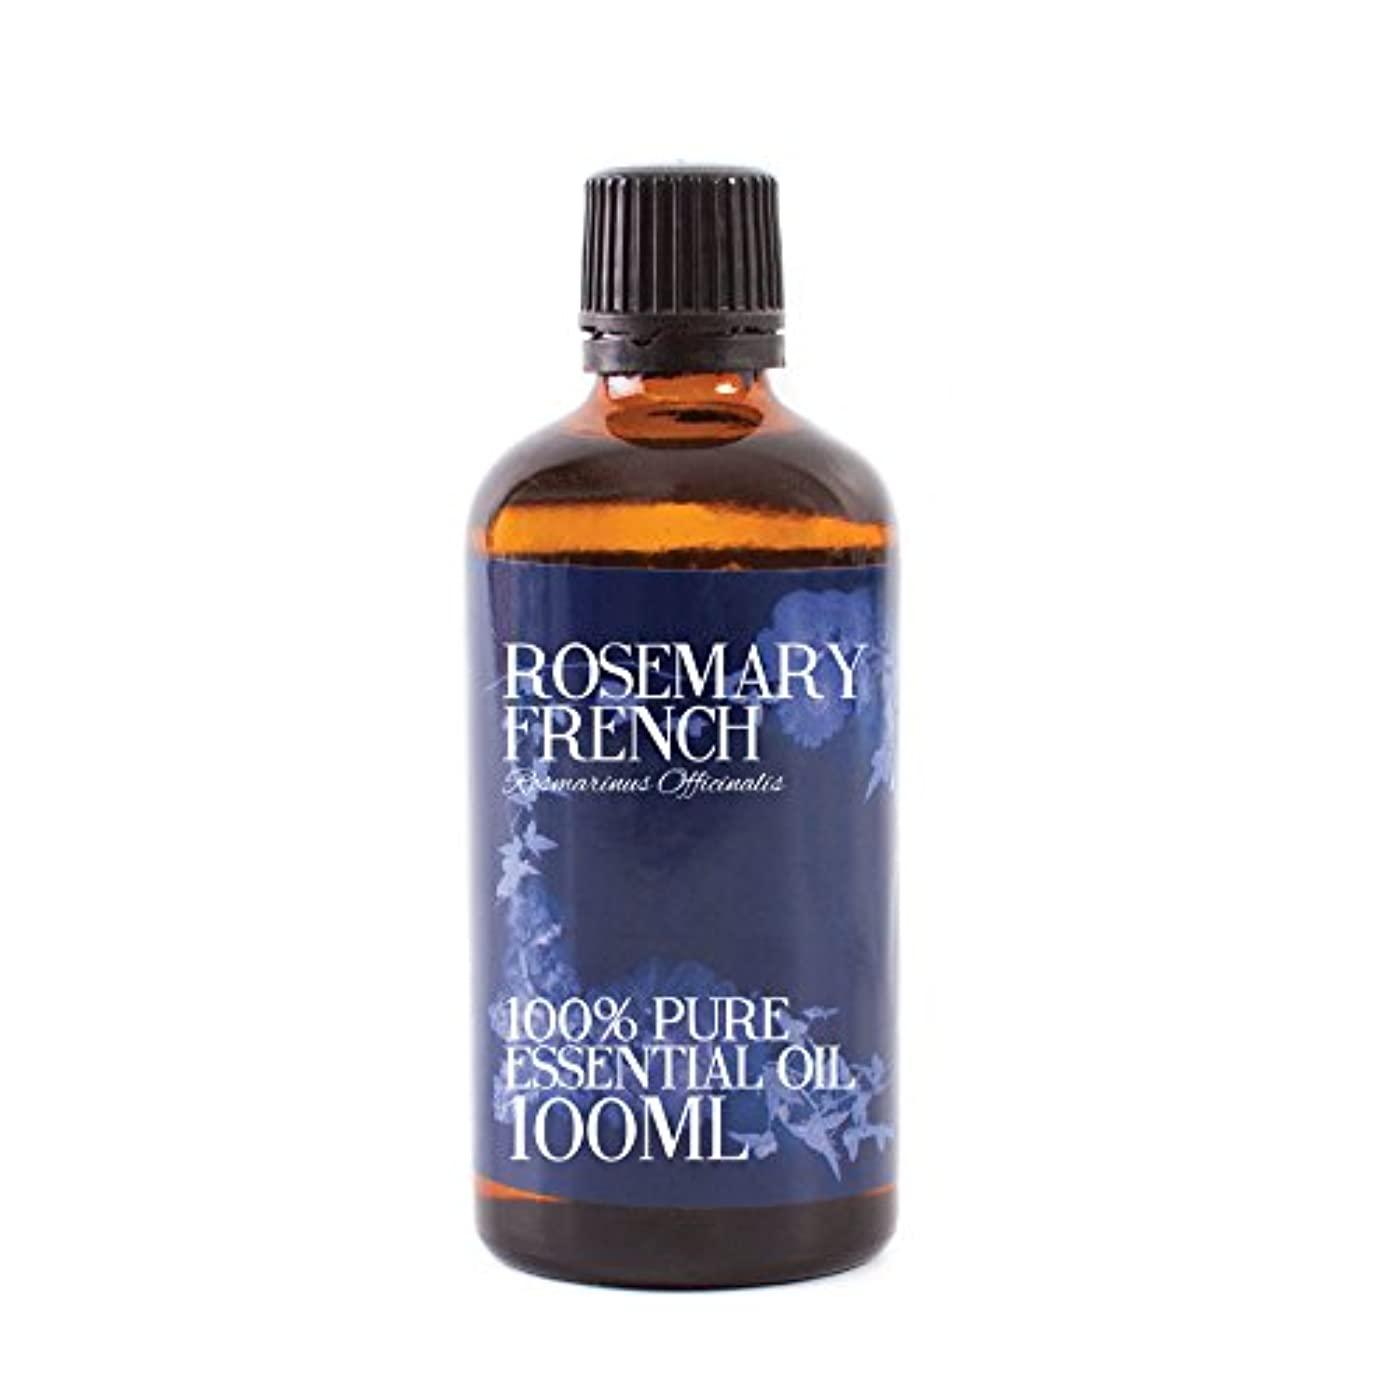 Mystic Moments | Rosemary French Essential Oil - 100ml - 100% Pure